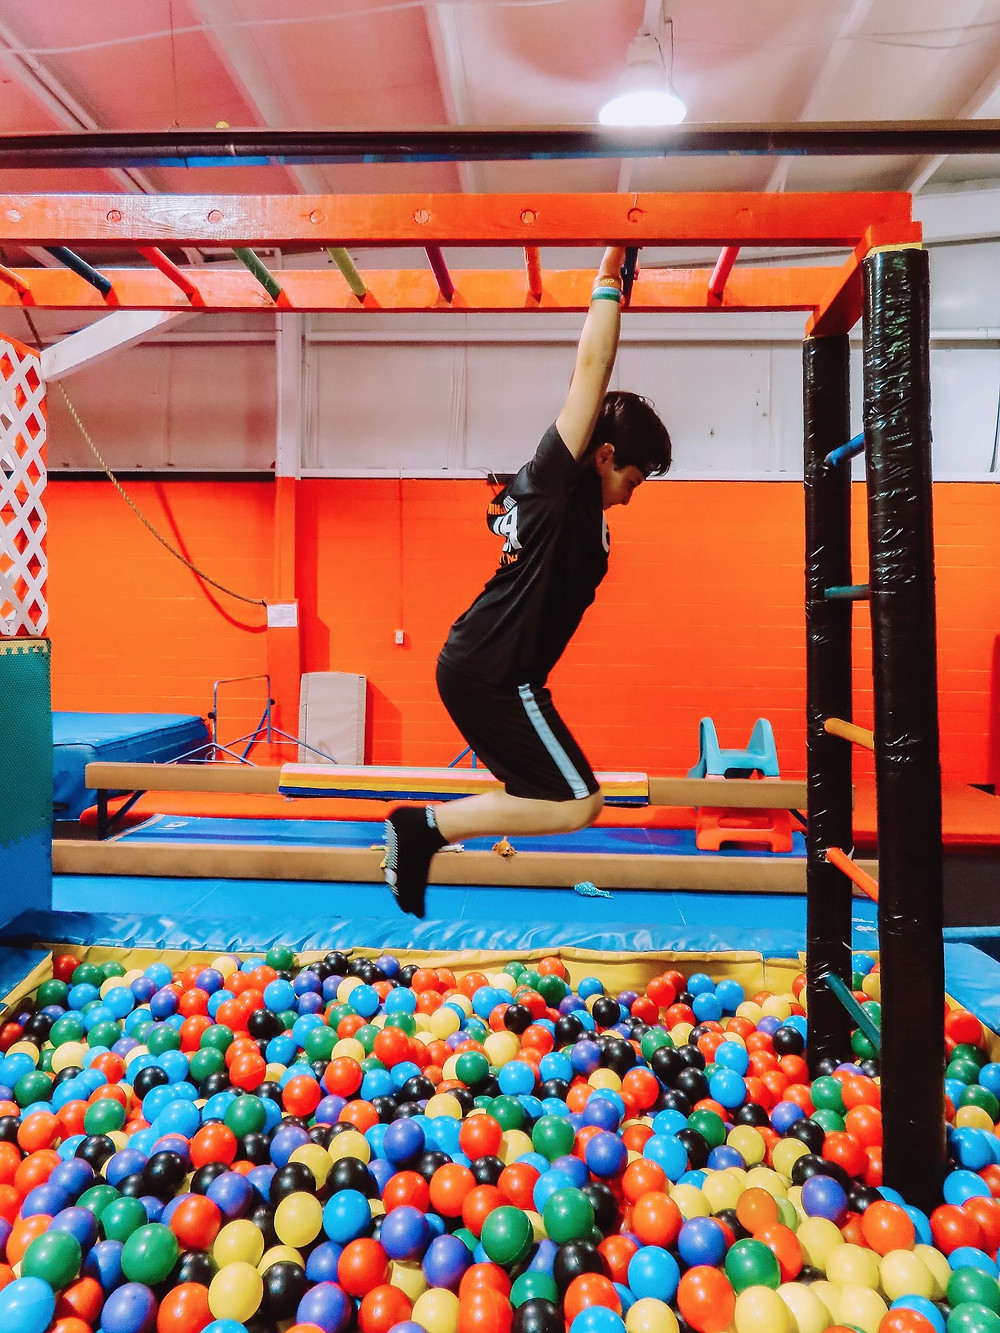 ninjazone, indianapolis, indianapolis blogger, mom blogger, kids sports, indy with kids, gymnastics for boys, kid workout routines,